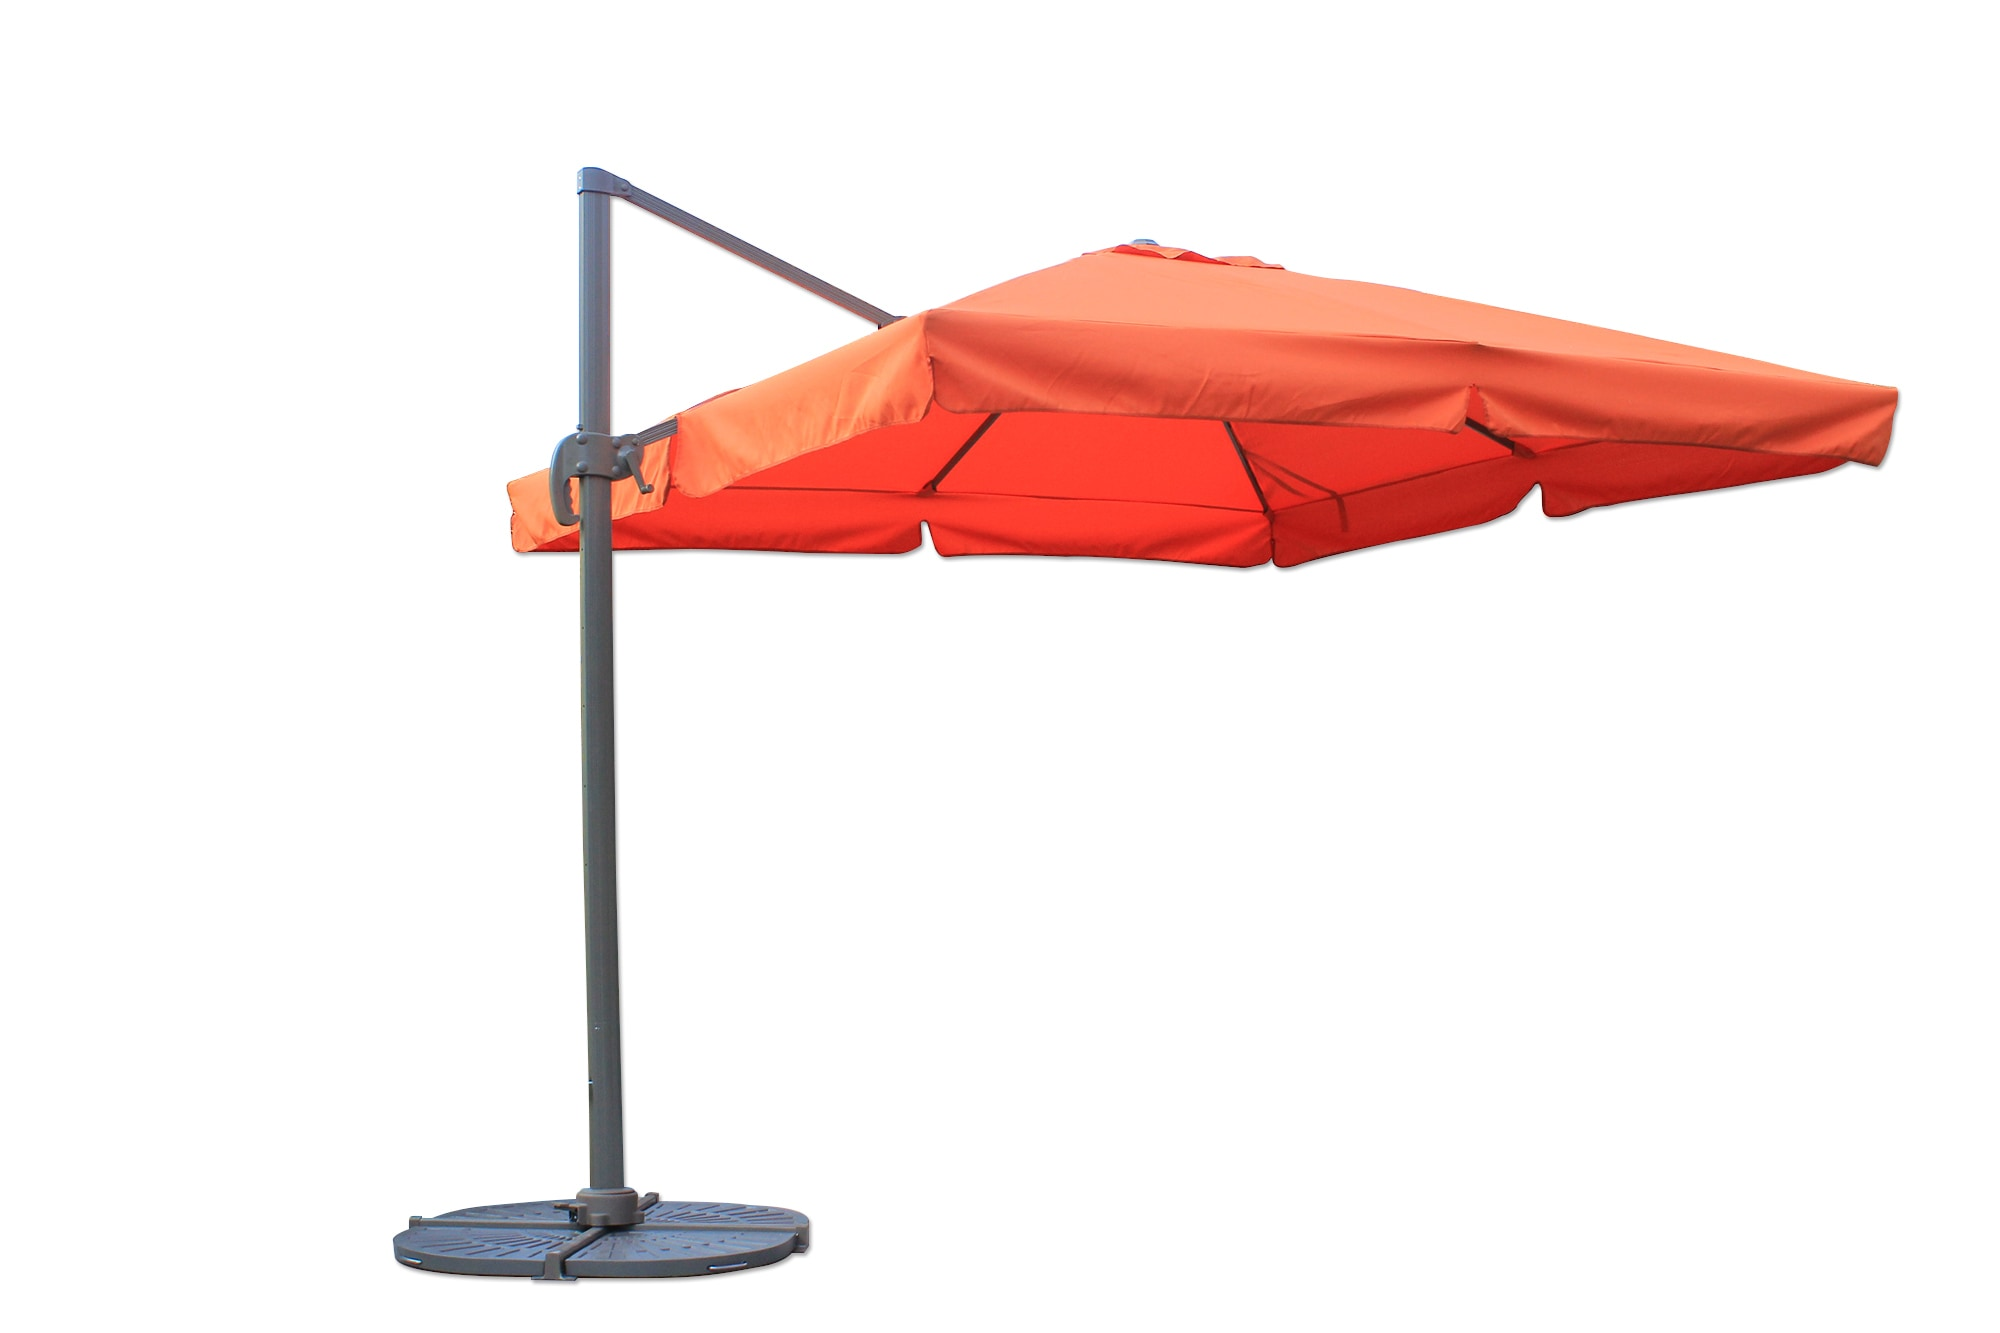 Kontiki Shade & Cooling fset Patio Umbrellas 10 ft